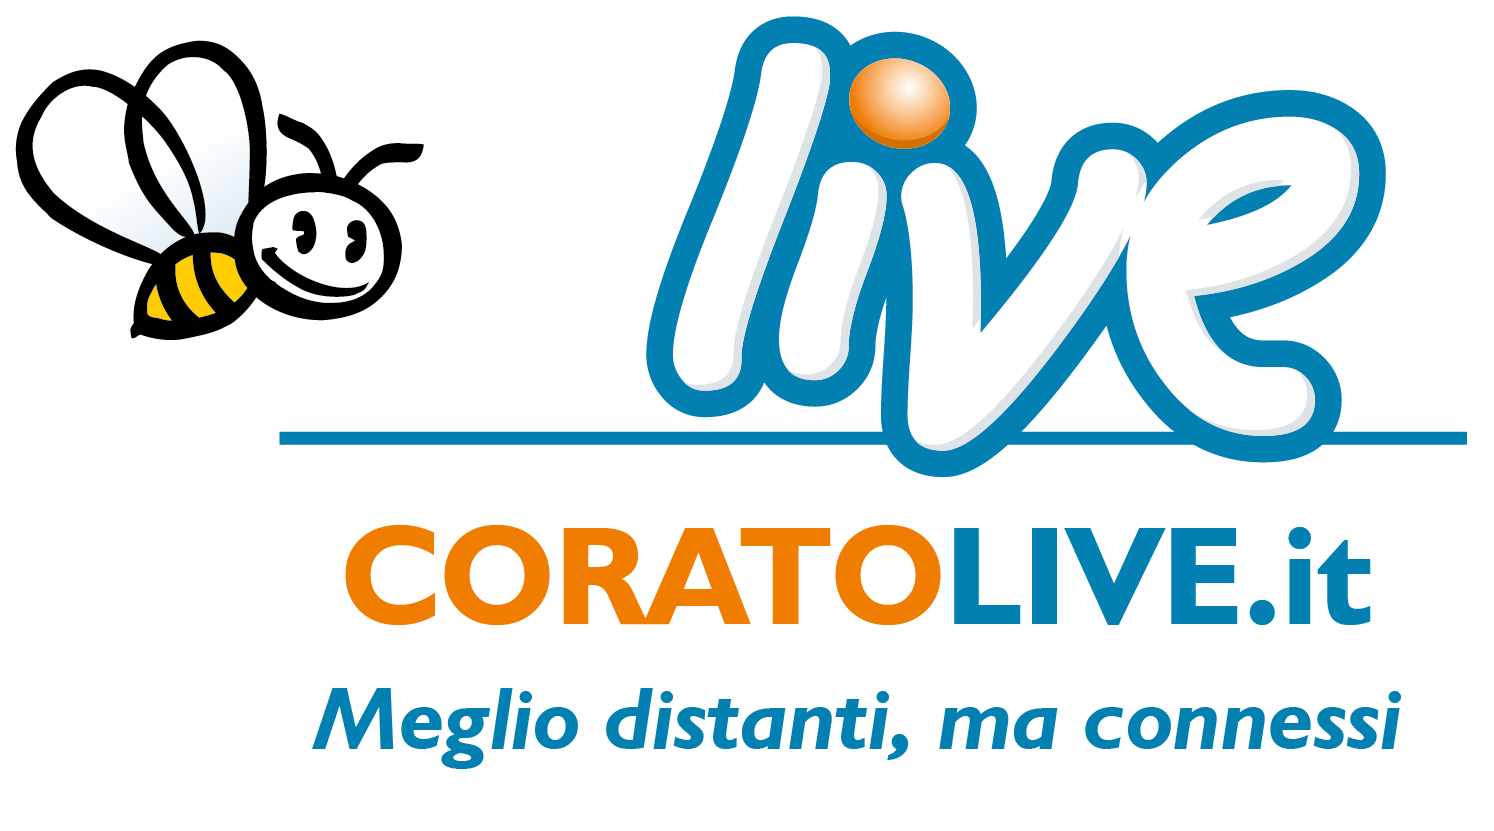 CoratoLive.it